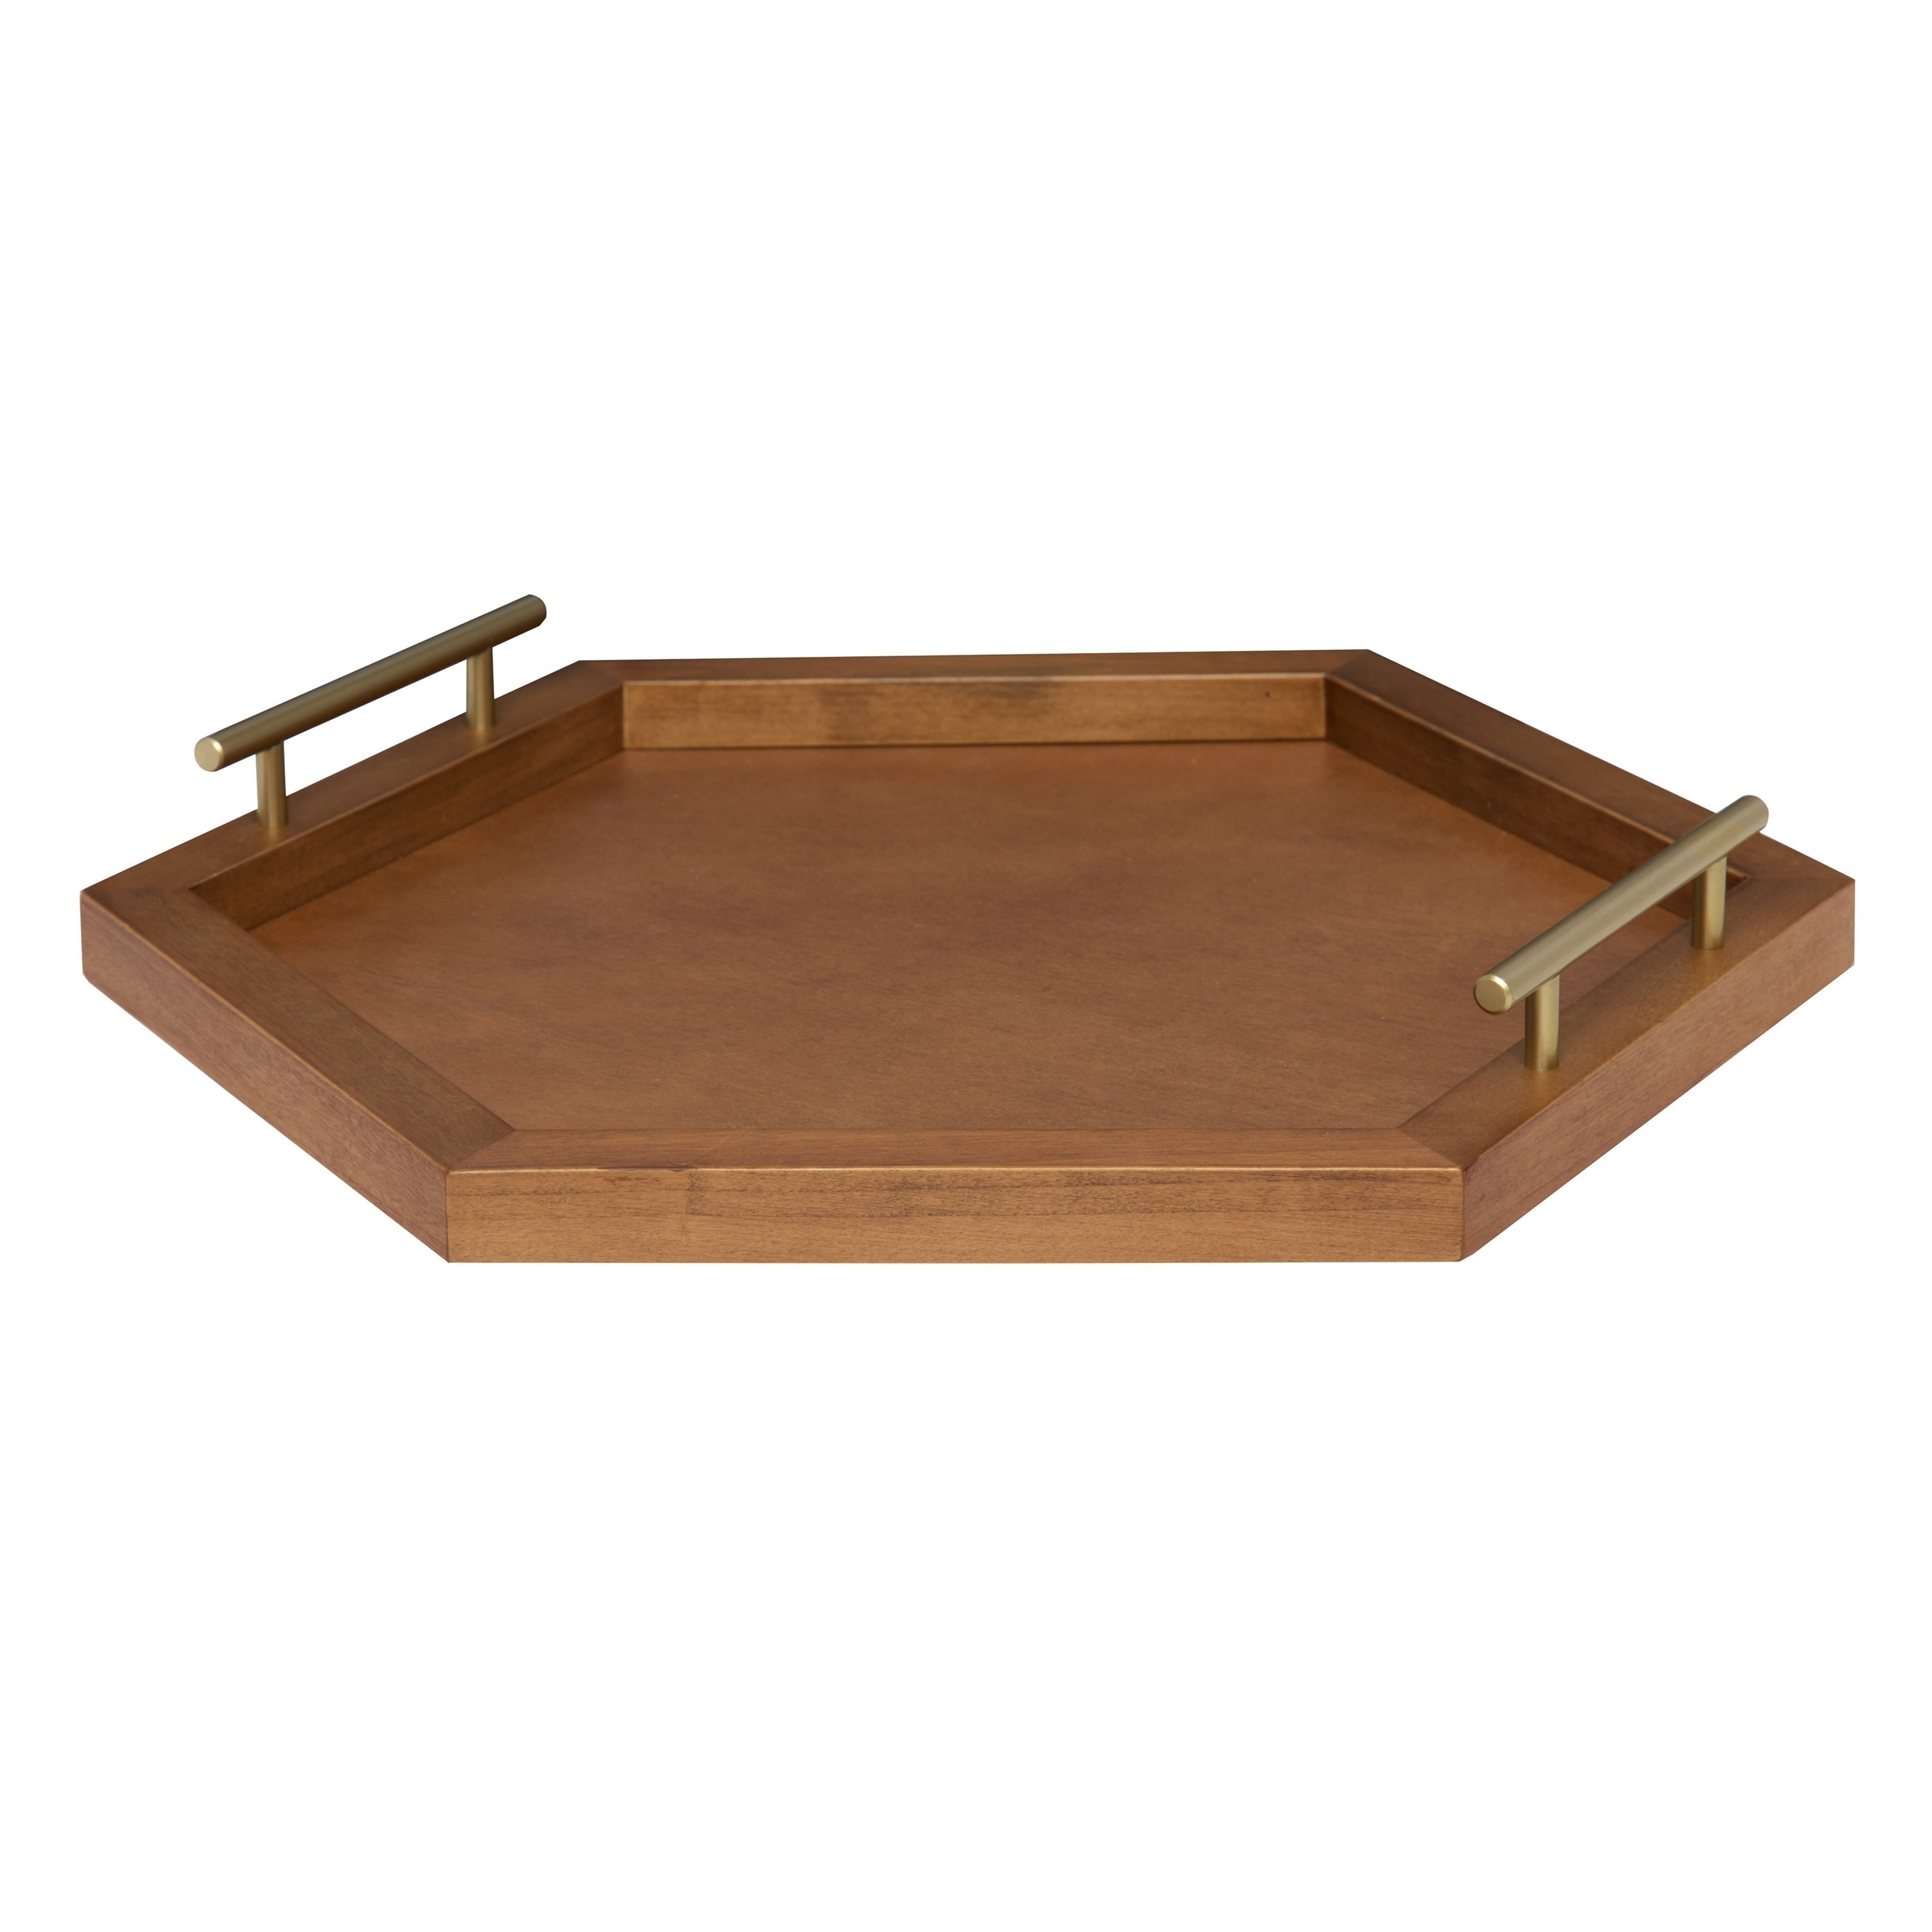 e94ec447a3 Shop Halsey Hexagon Decorative Wood Tray with Polished Metal Handles - Free  Shipping Today - Overstock - 20953651